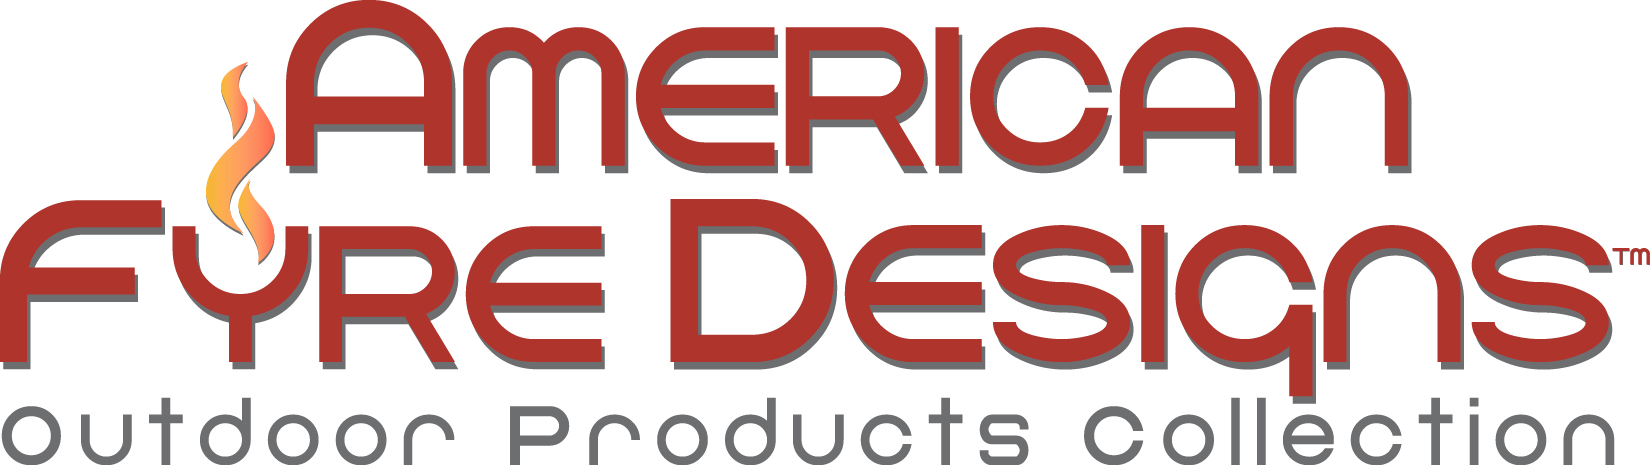 American Fyre Designs - Outdoor Products Collection